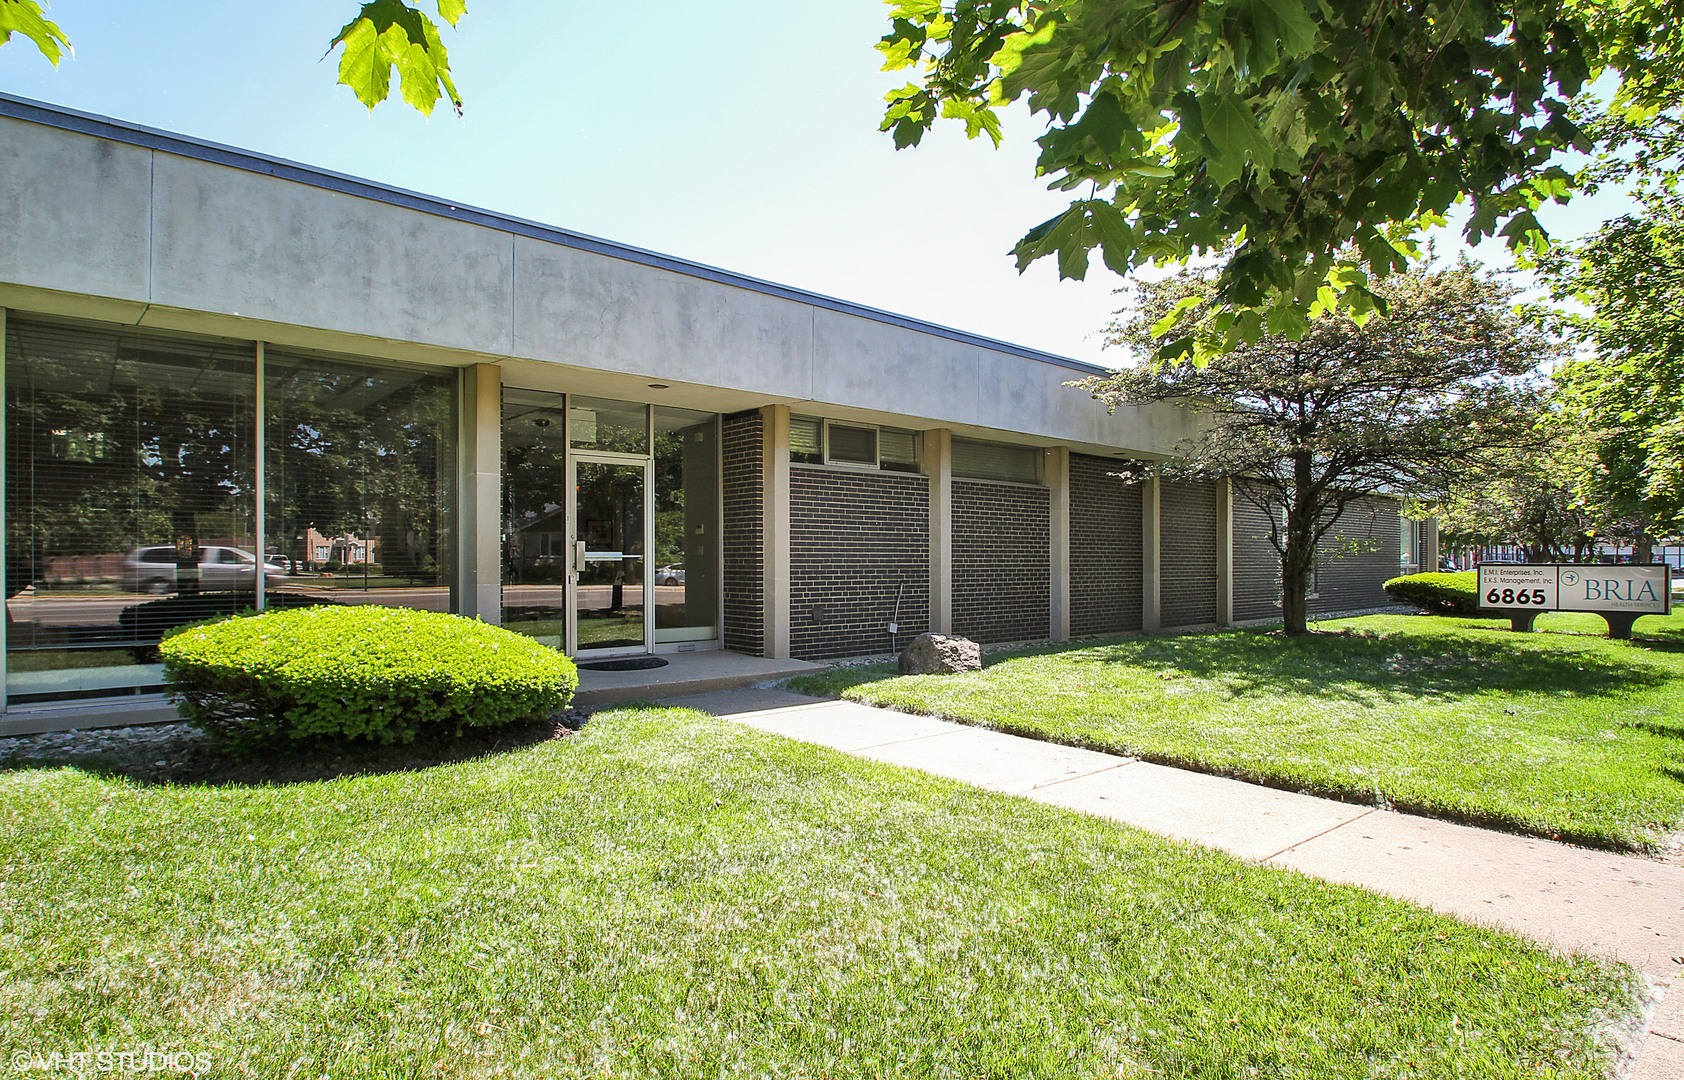 6865 Lincoln ,Lincolnwood, Illinois 60712